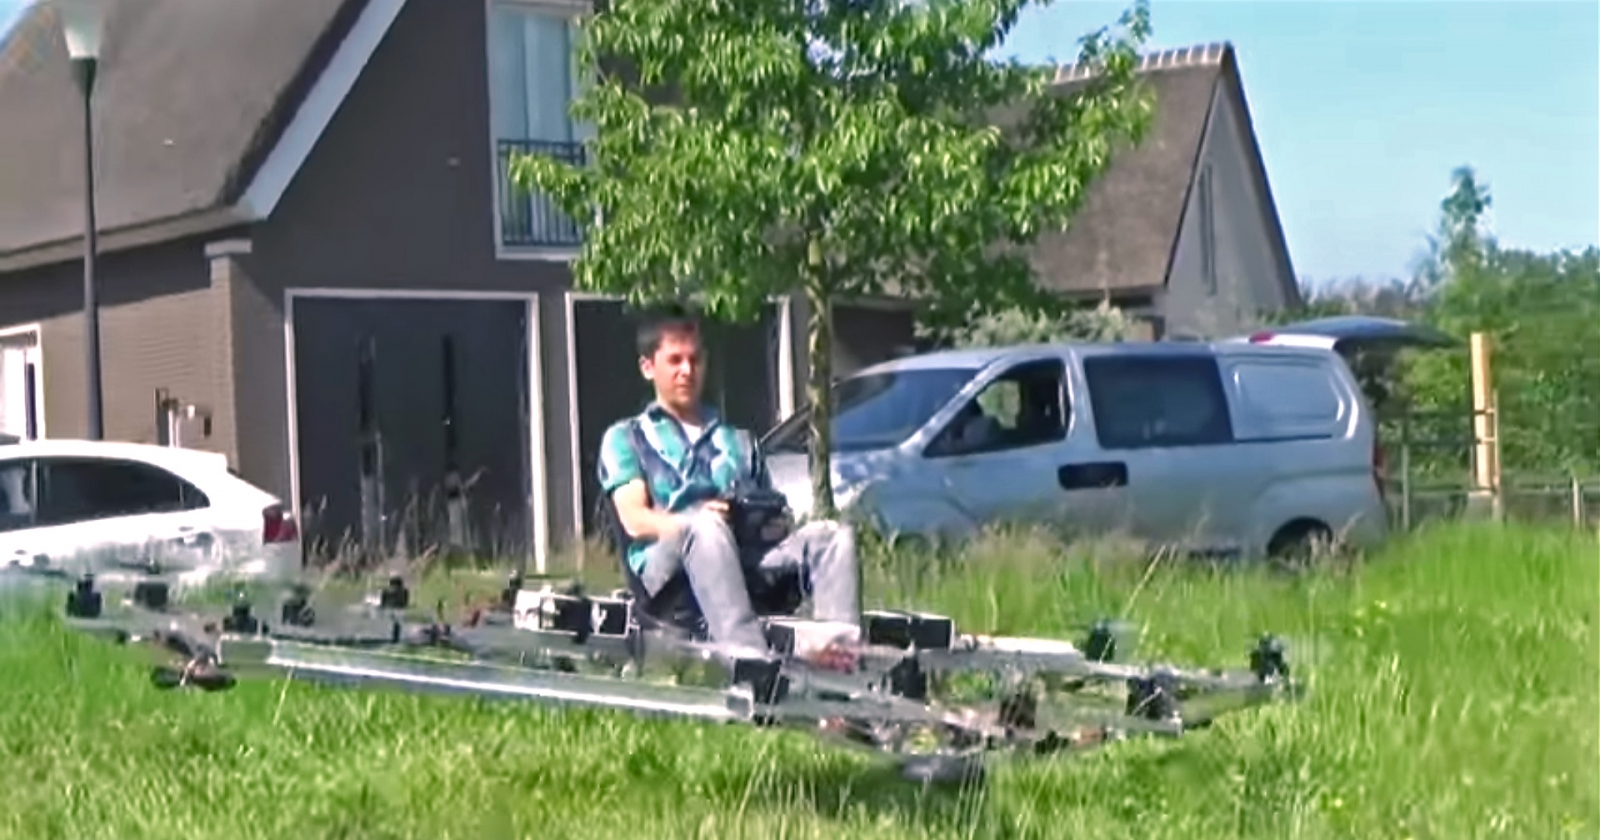 Thorstin Crijns testing his personal flight vehicle